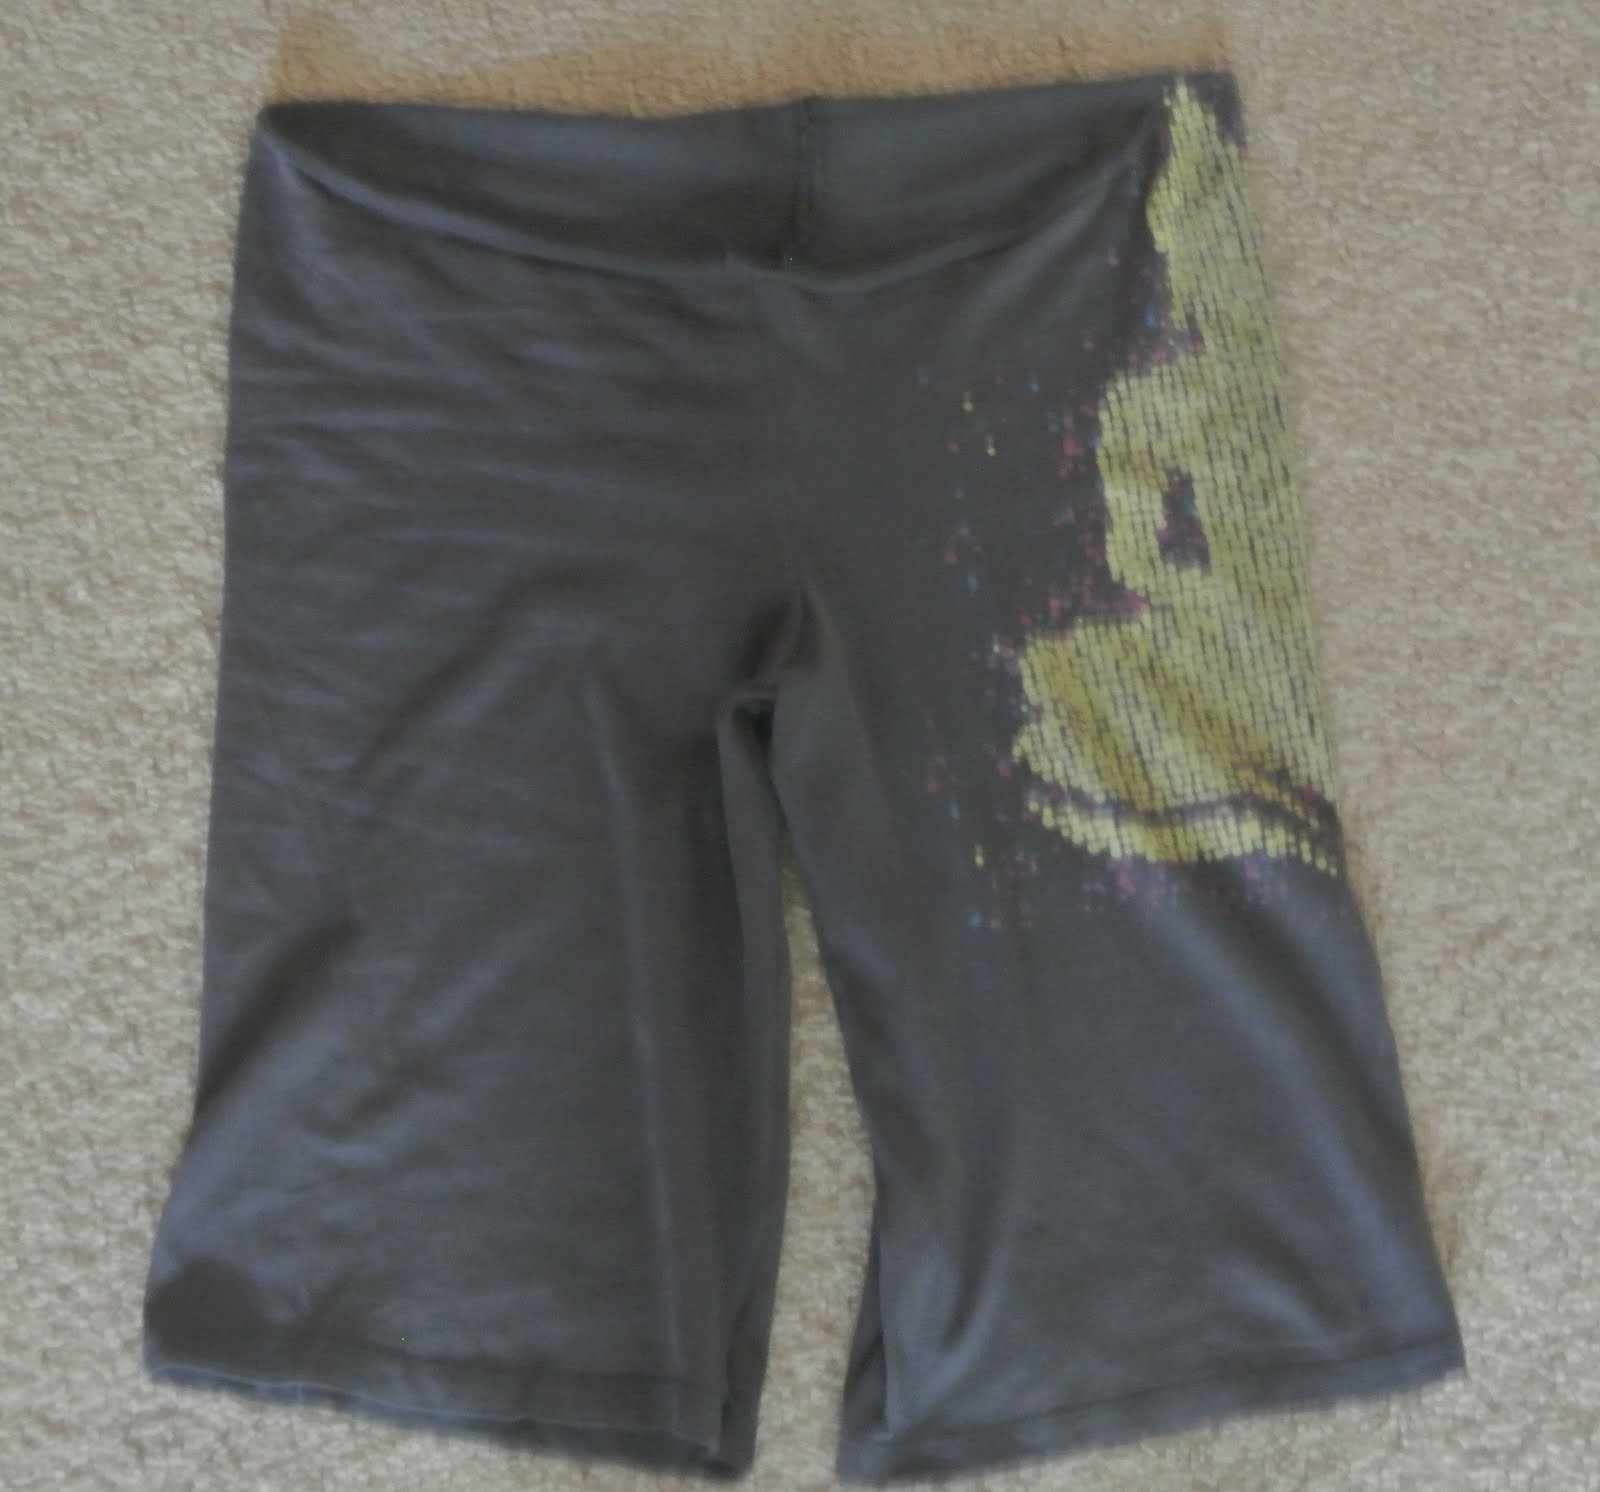 updated yoga pants from old tshirts tutorial tutorials